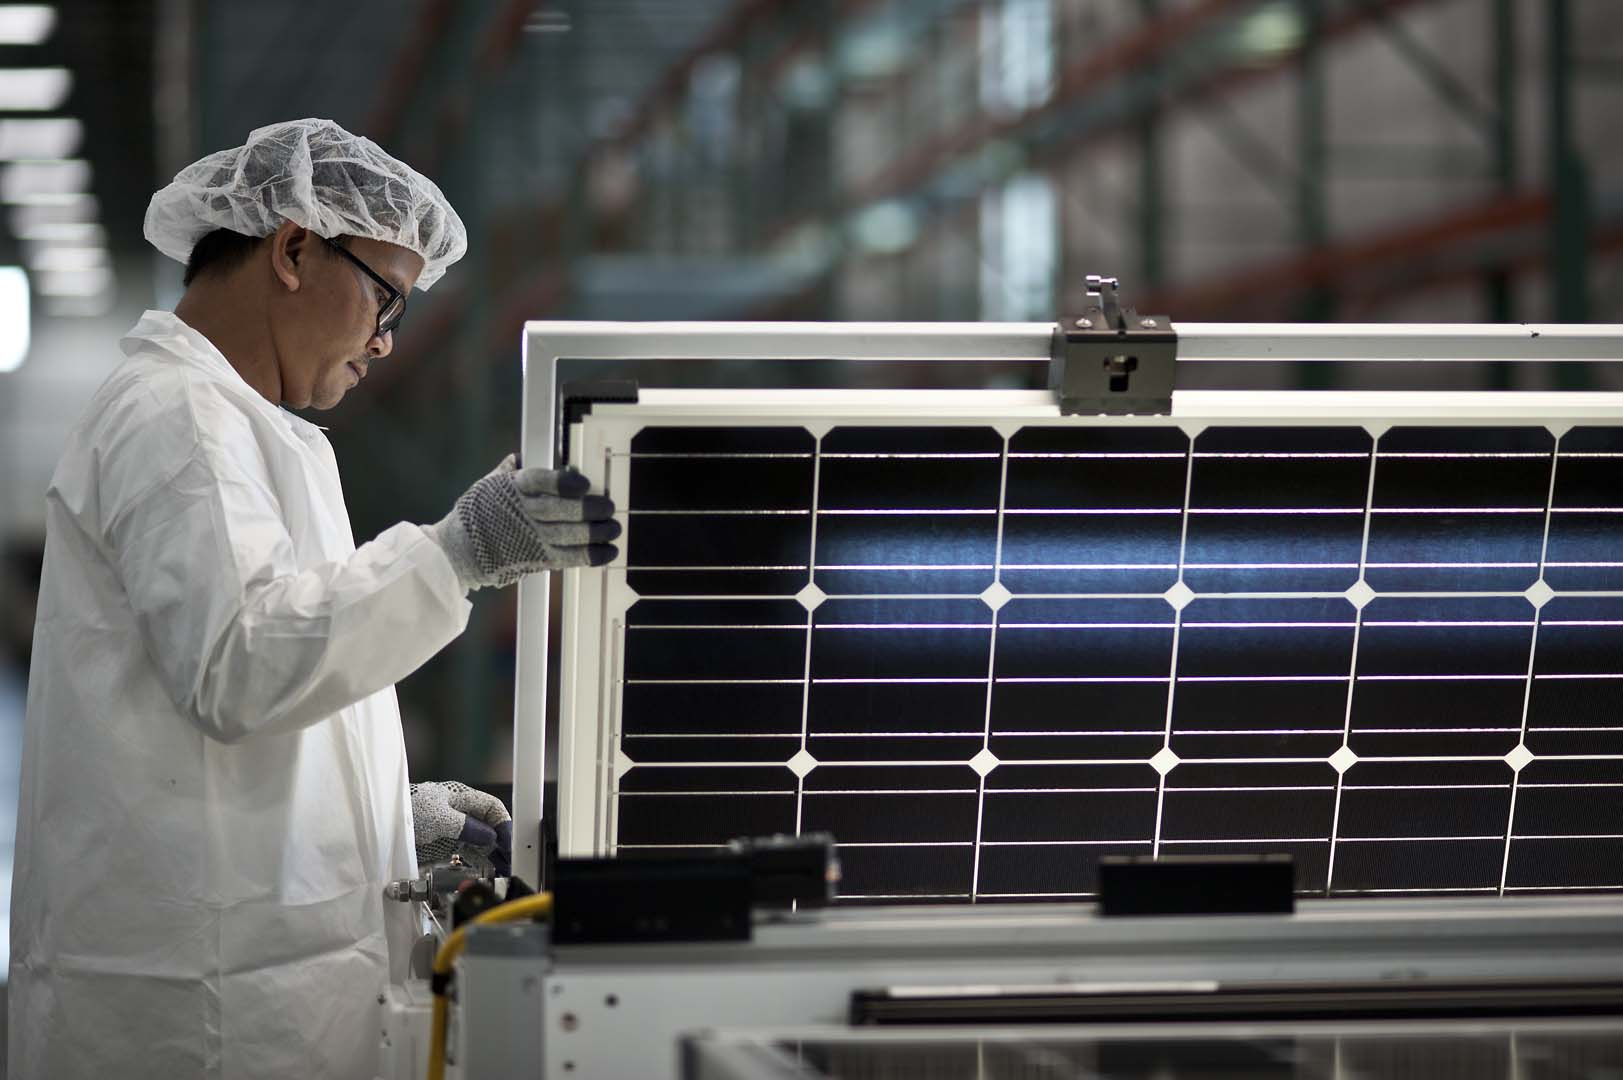 SolarWorld Americas said it had been given a US$5 million loan to support a return to full manufacturing capacity, which would add around 200 jobs, sometime in the third quarter of 2018. Image SolarWorld Americas